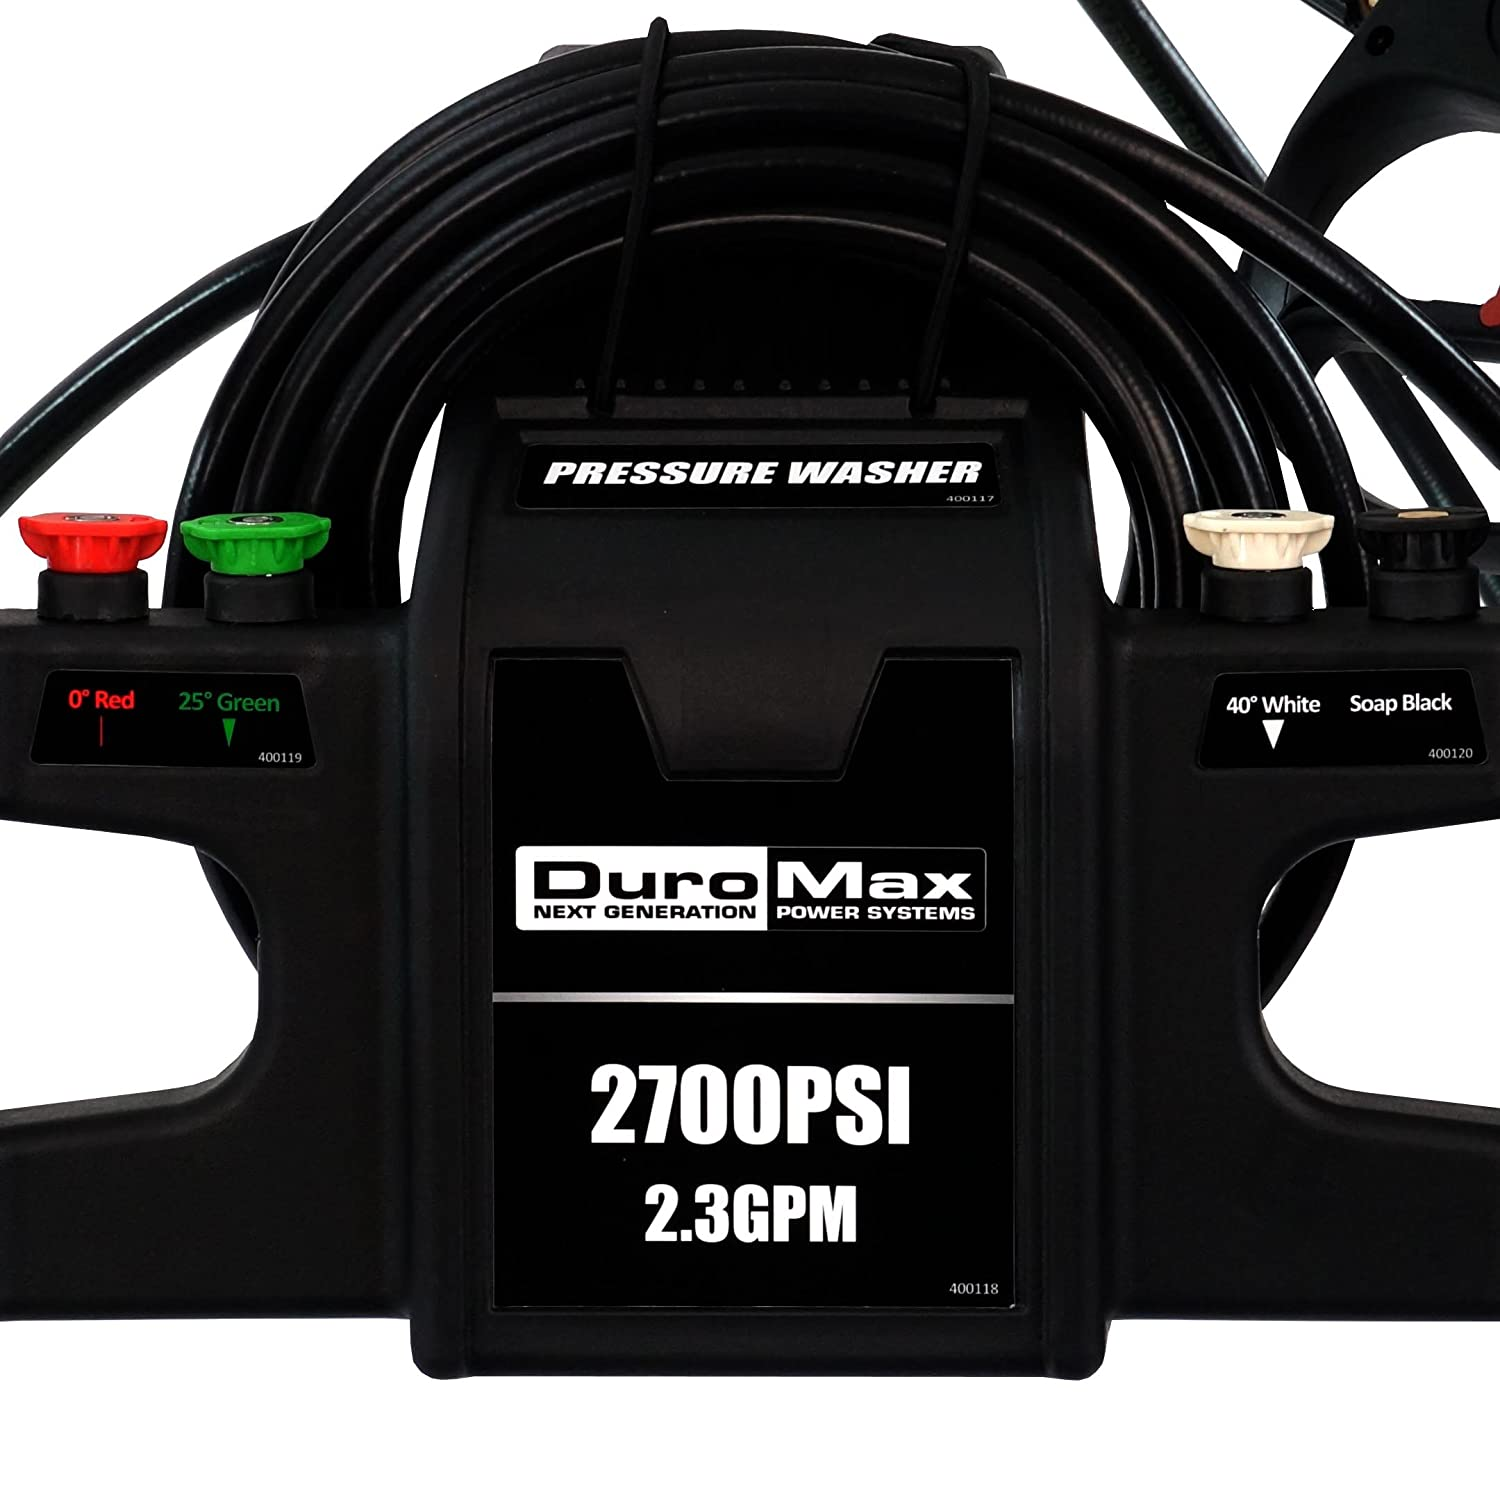 Amazon.com : Duromax XP2700PWS 2.3 GPM 5 HP Gas Engine Pressure Washer, 2700 PSI